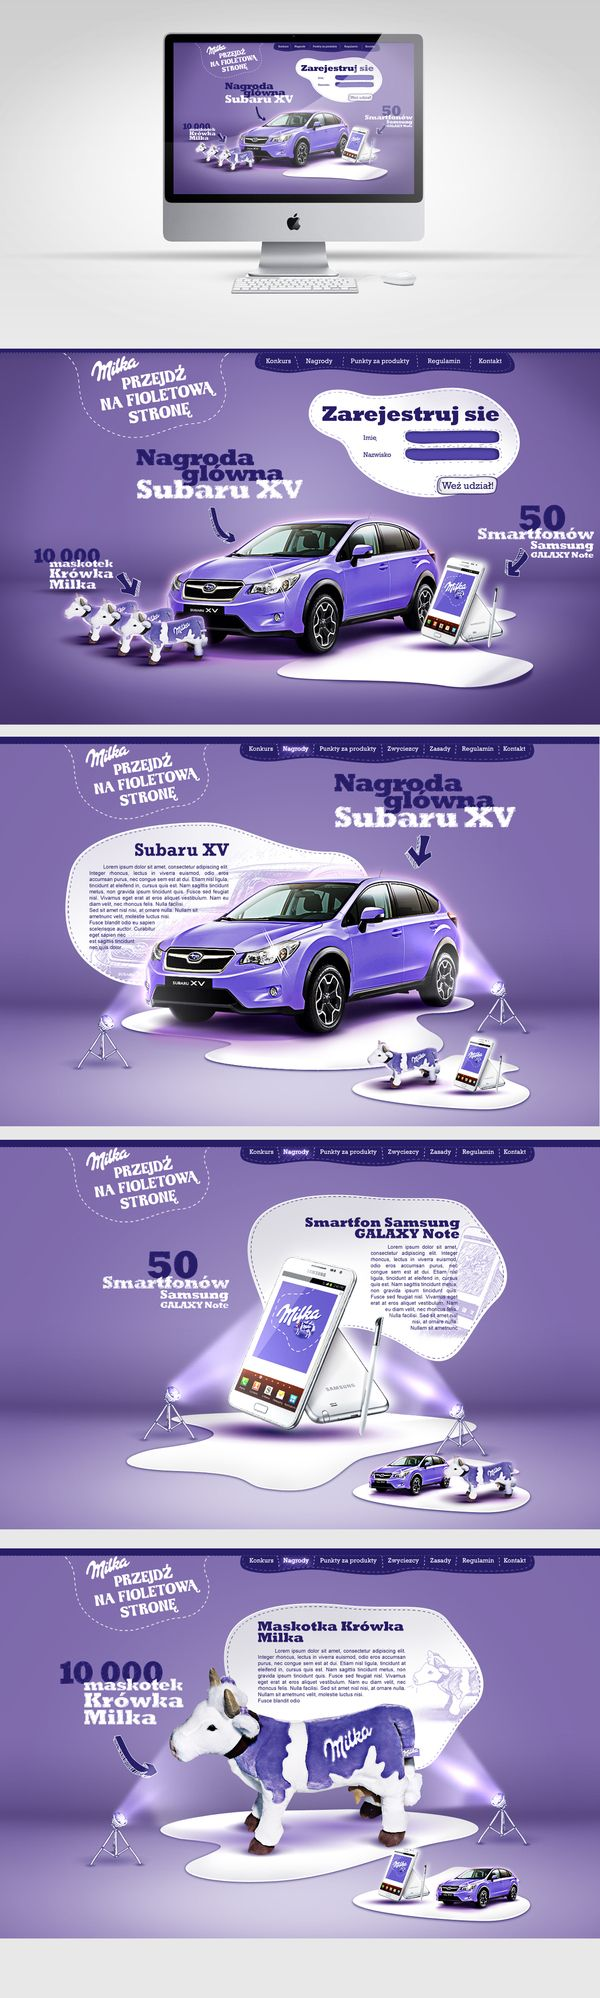 Milka by Rafał Pawłowski, via BehanceWebdesign, Subaru Xv, Web Design, Behance Plz, Digital Website, Rafał Pawłowski, Website Design Layout, Design Layouts, Website Designs